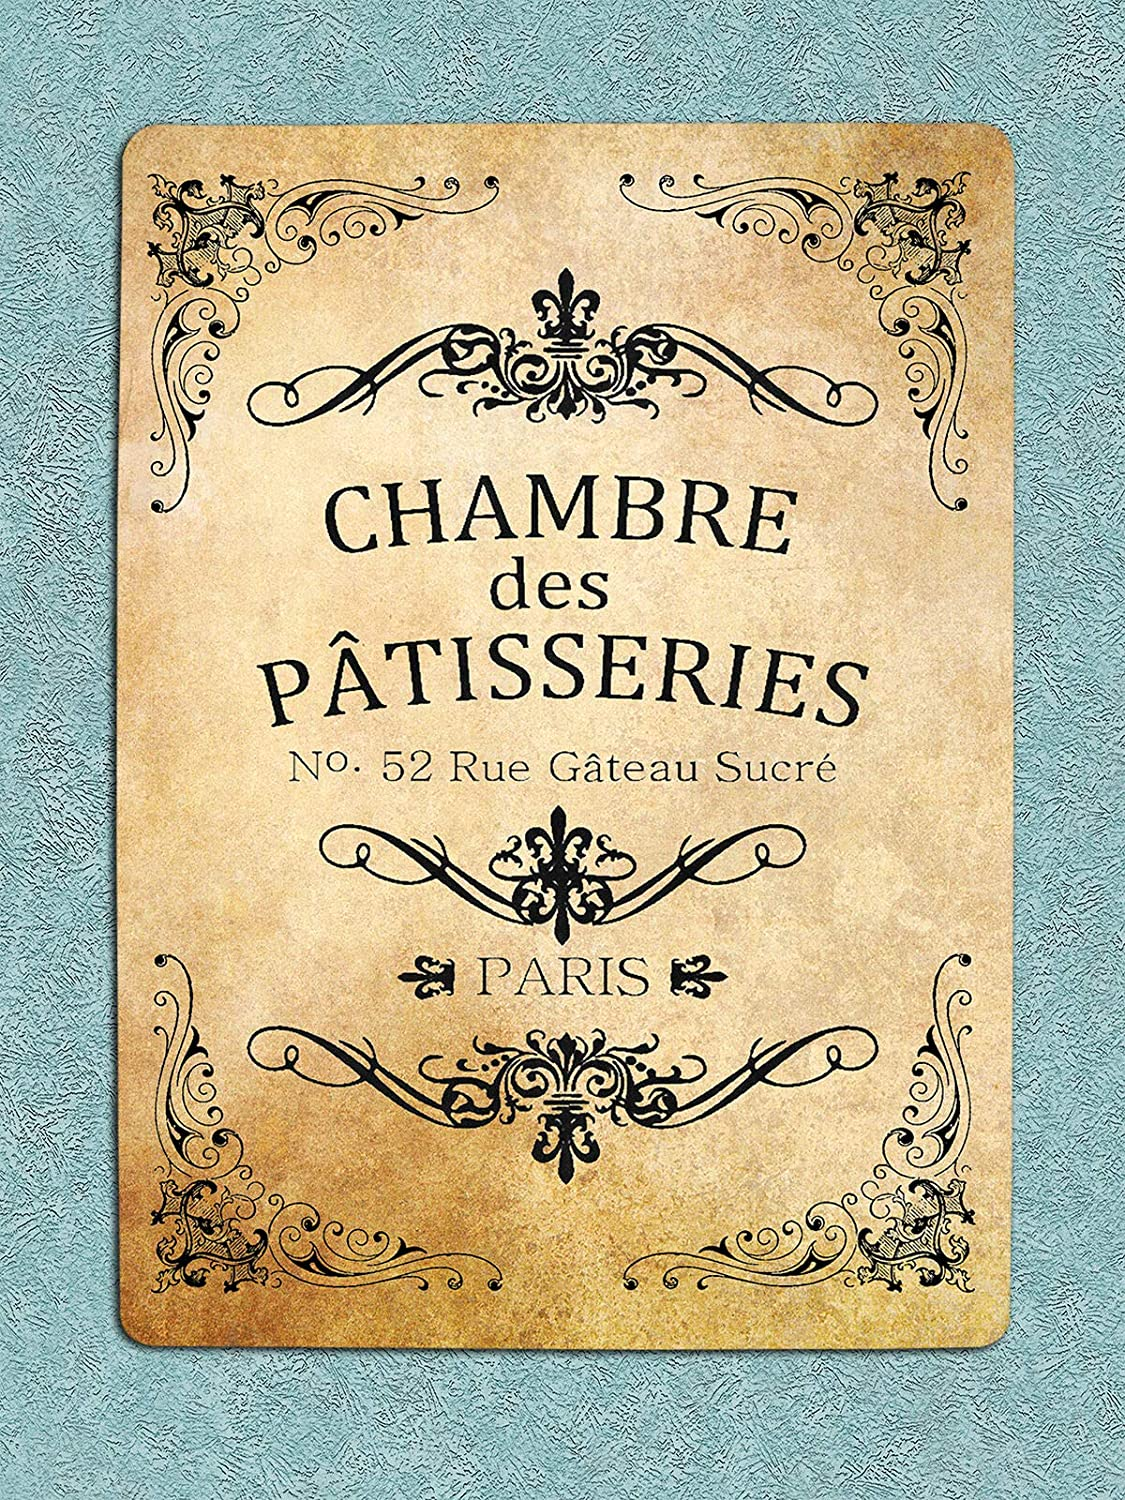 New Vintage Metal Tin Sign French Paris Chamber Des Patisseries Pastry Room Street Garage & Home Bar Club Kitchen Hotel Wall Decor Metal Plaque Sign 12X8Inch